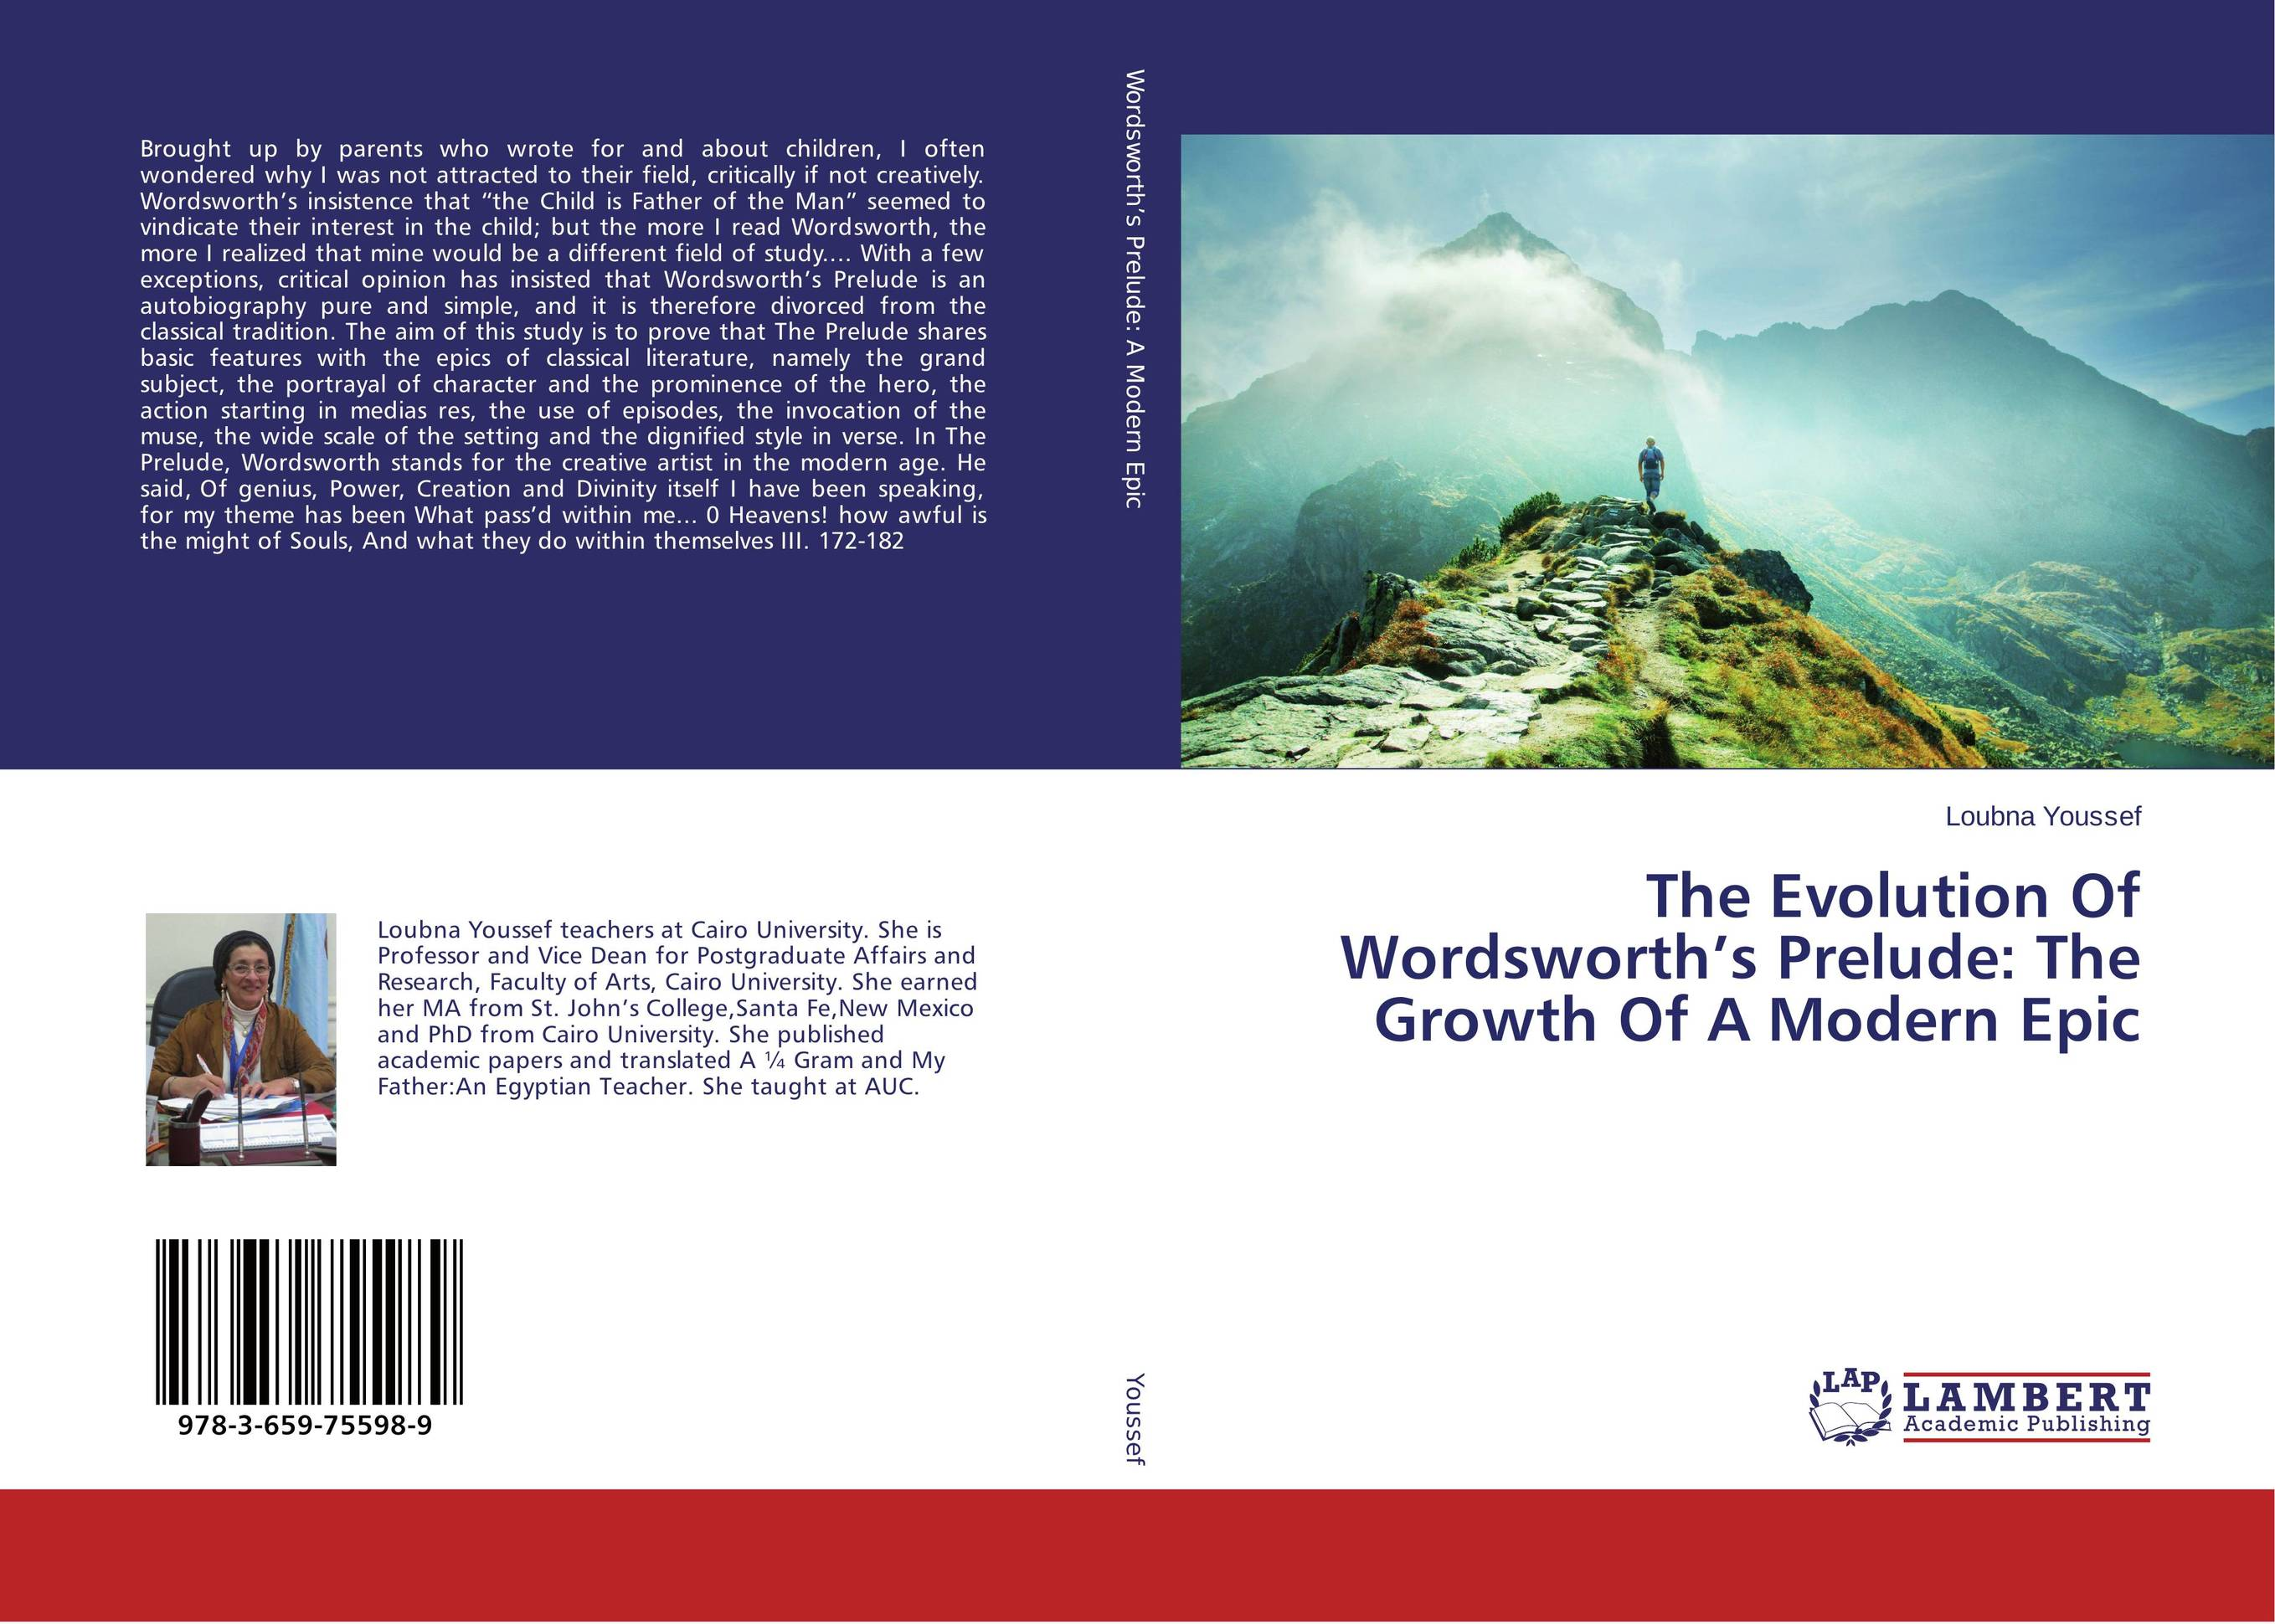 The Evolution Of Wordsworth's Prelude: The Growth Of A Modern Epic more of me